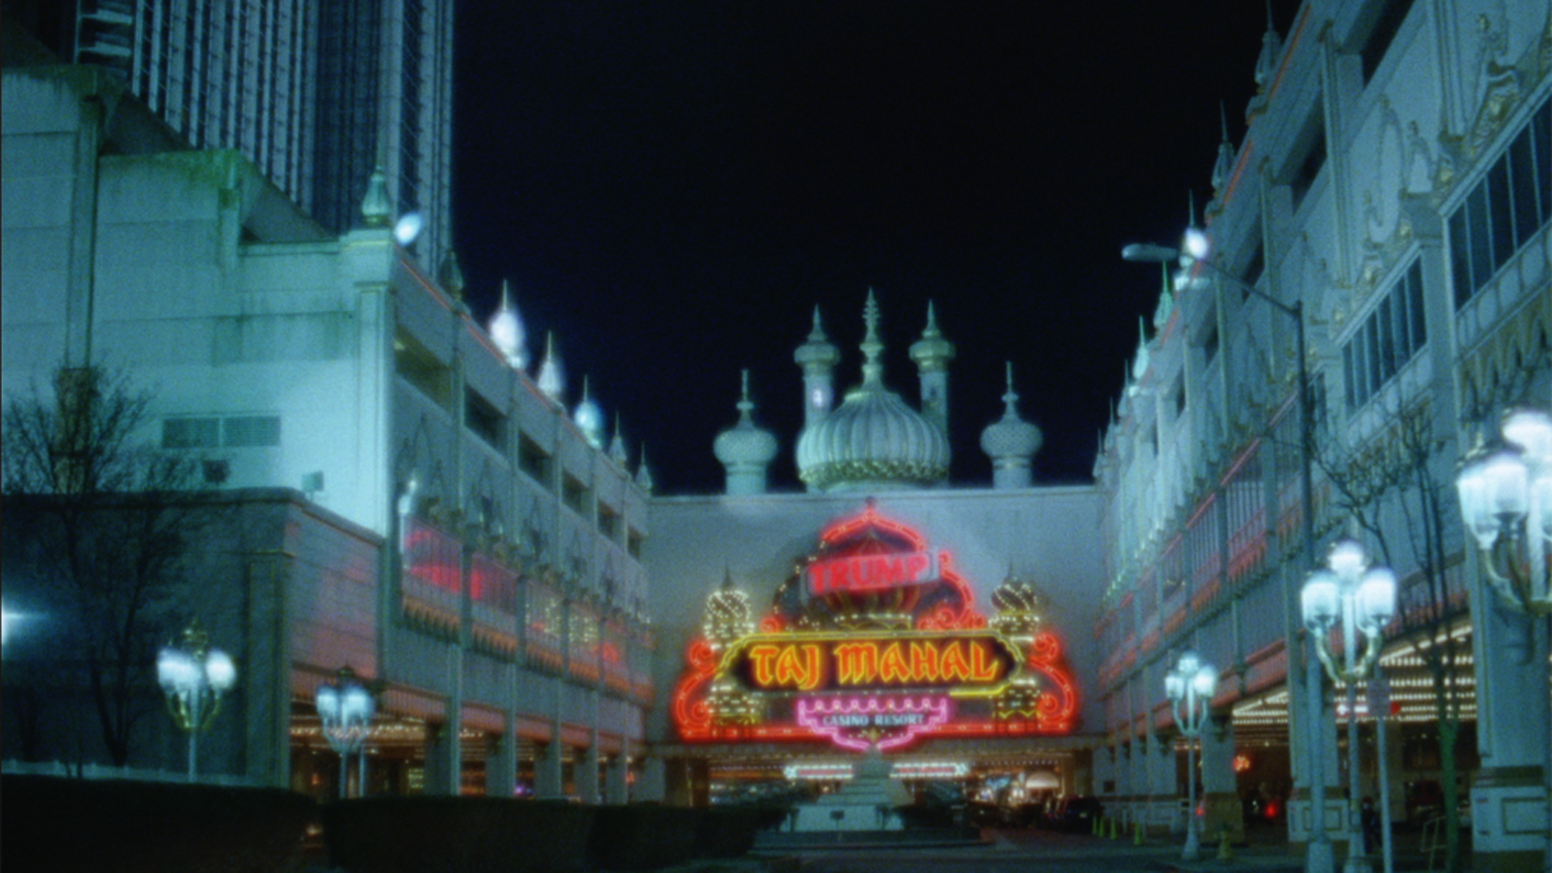 A pyramid schemer's dark night of the soul in lonely Atlantic City, starring David Warshofsky and Michael James Shaw.